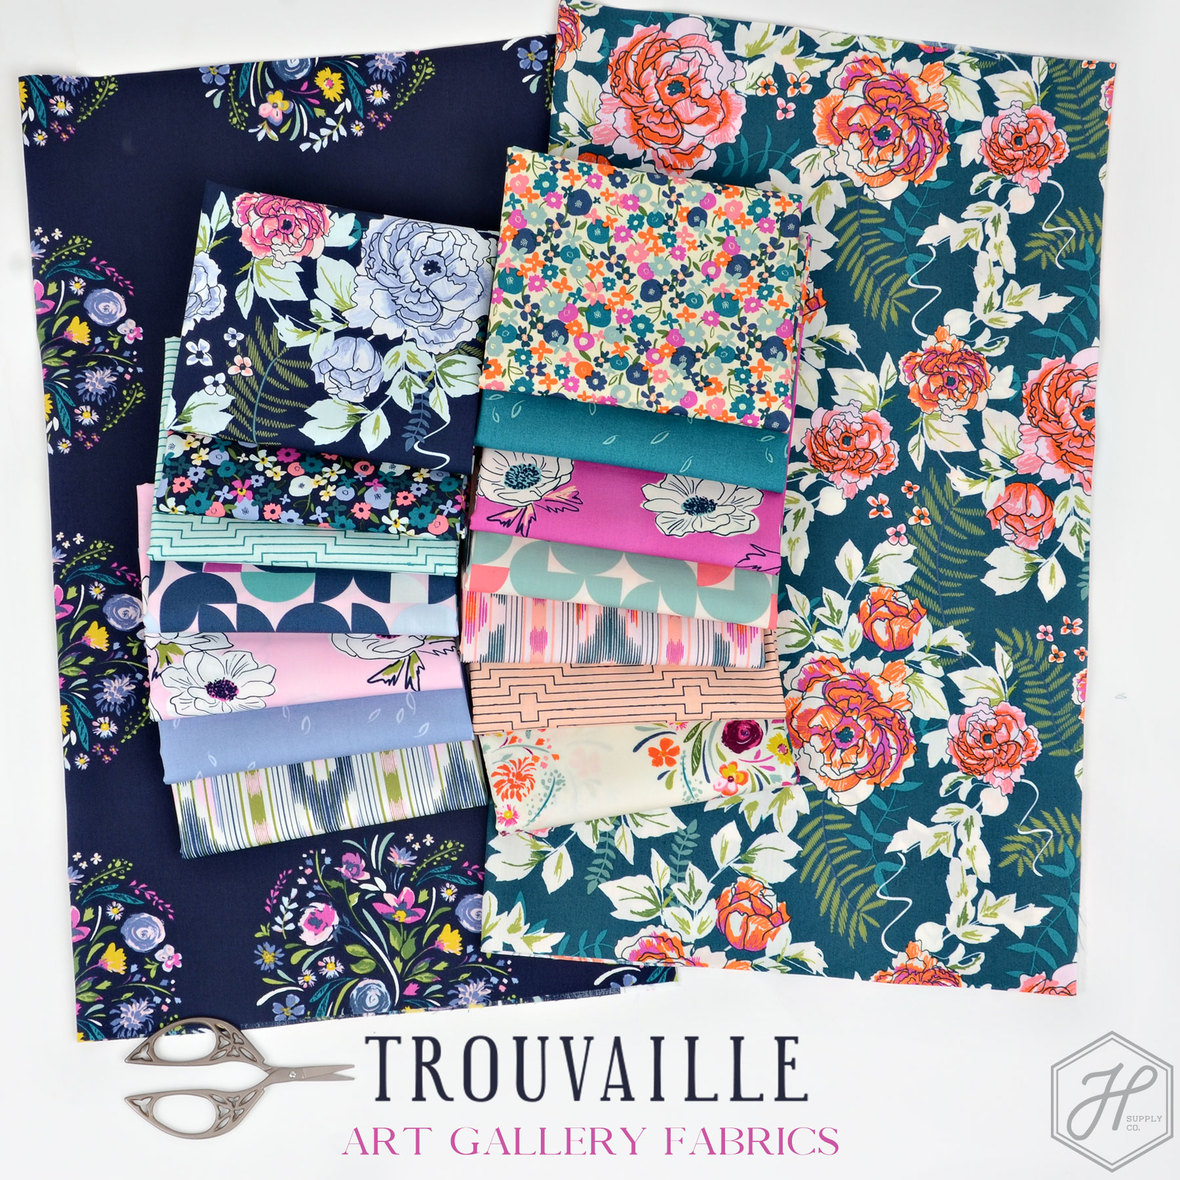 Trouvaille-Fabric-Art-Gallery-at-Hawthorne-Supply-Co